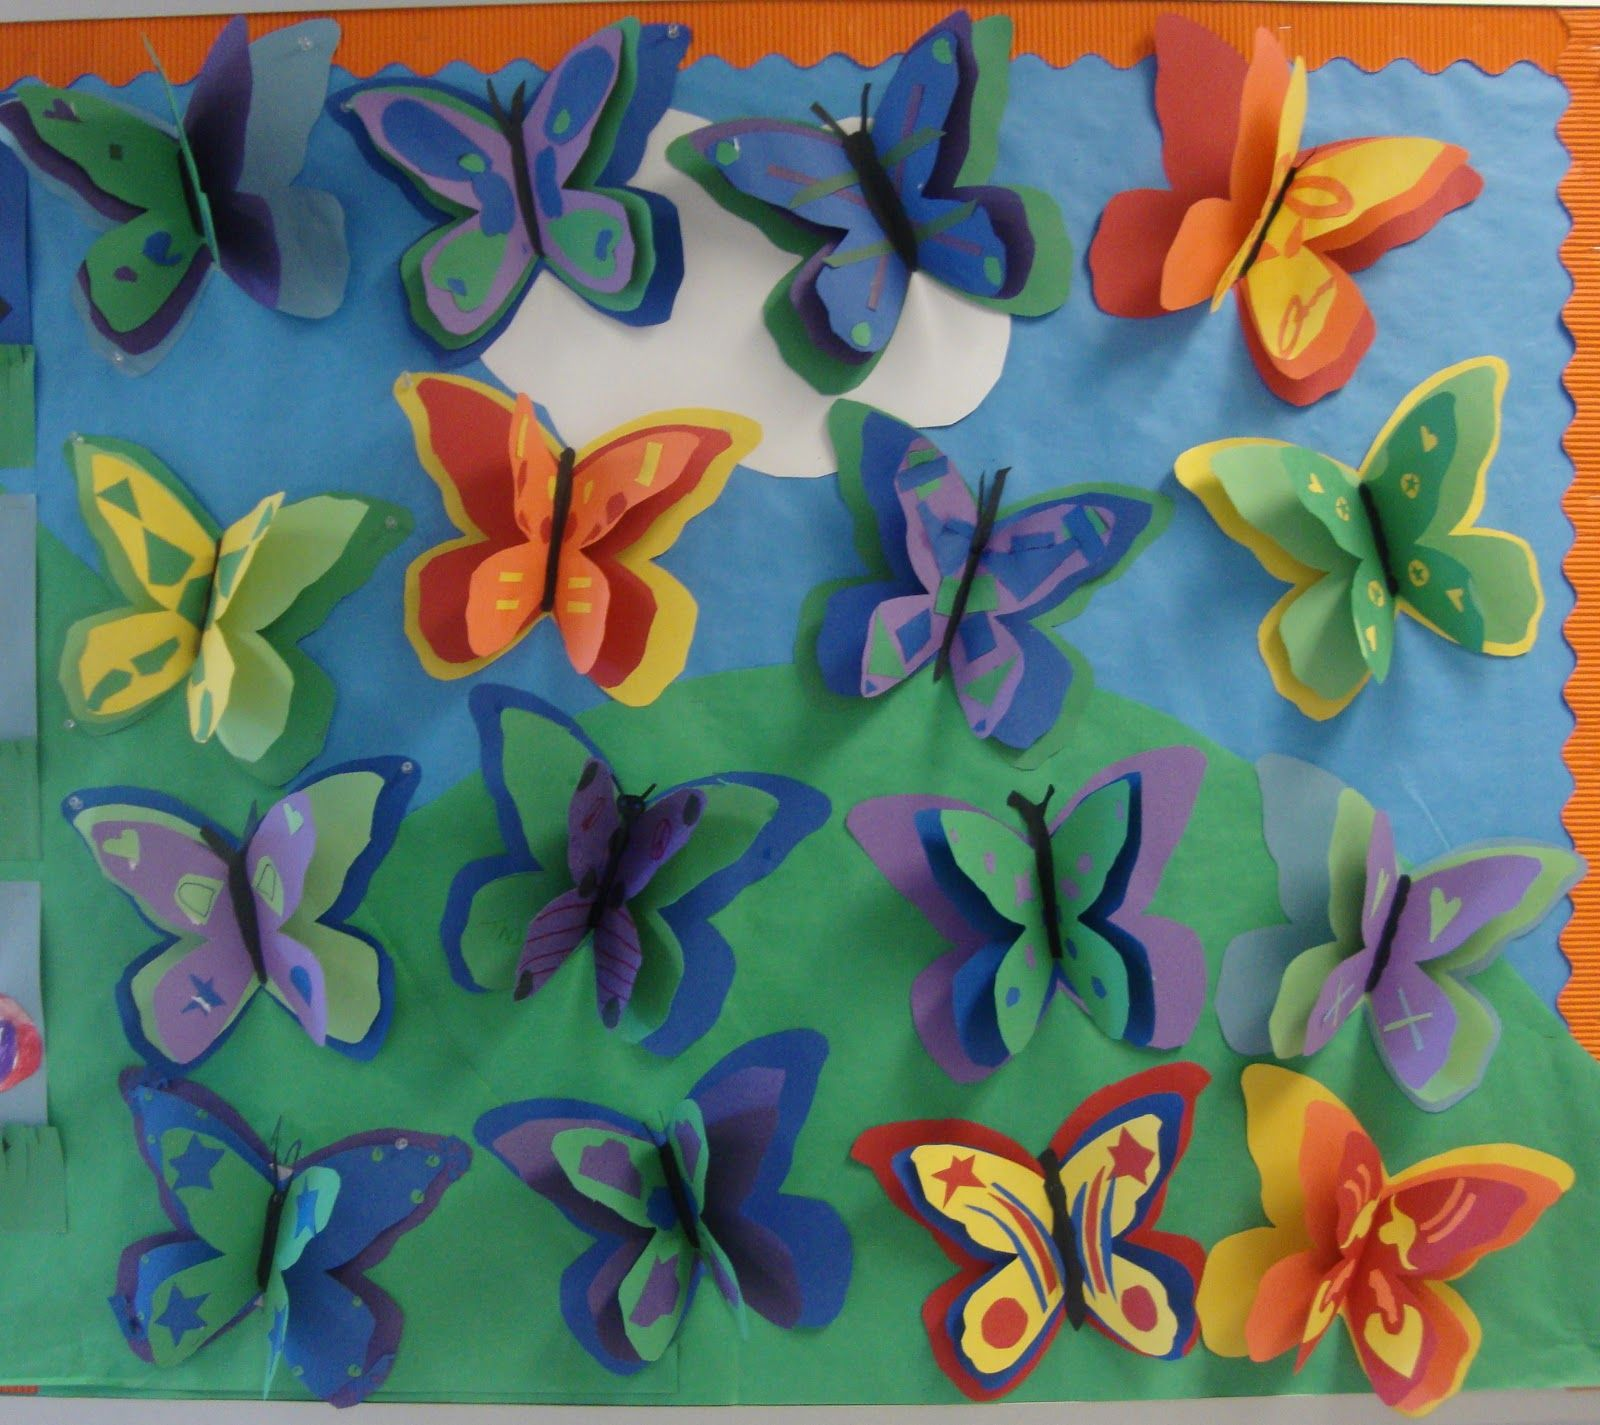 Color wheel art projects for kids - Colour Theory Butterflies From Art Paper Scissors Glue